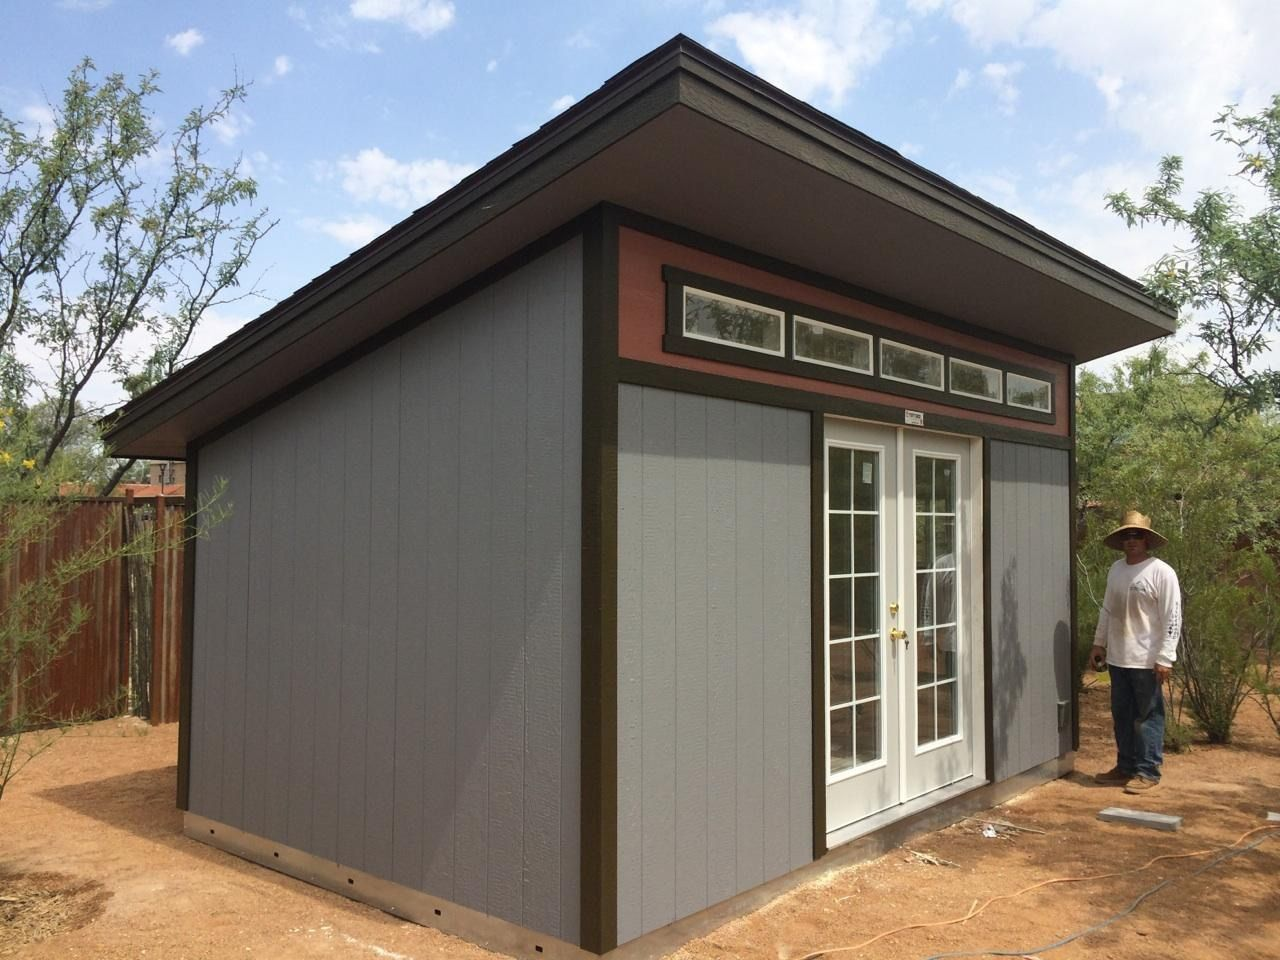 sales img tractor vehicle sheds shed storage backyard pro portable garage equipment buildings